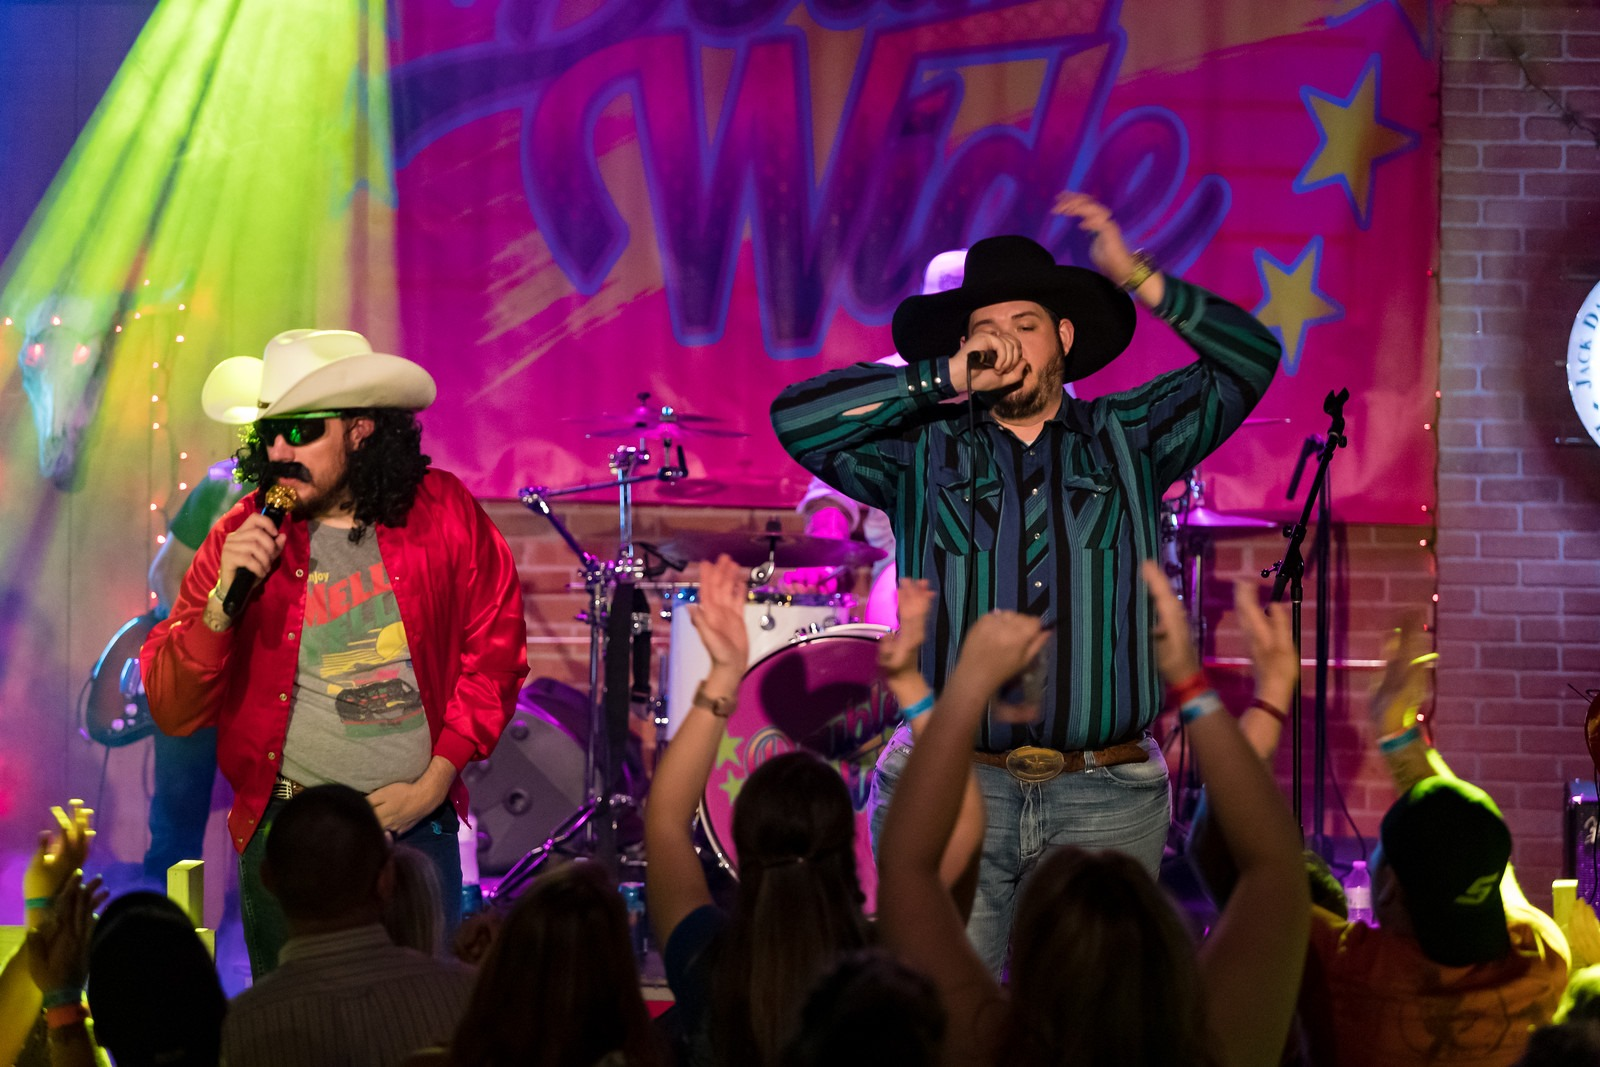 The greatest 90's country band EVER is teaming up with one of the greatest 90's country singers ever for a night fans cannot miss. Come sing along to all the hits, and party like it's 1994.